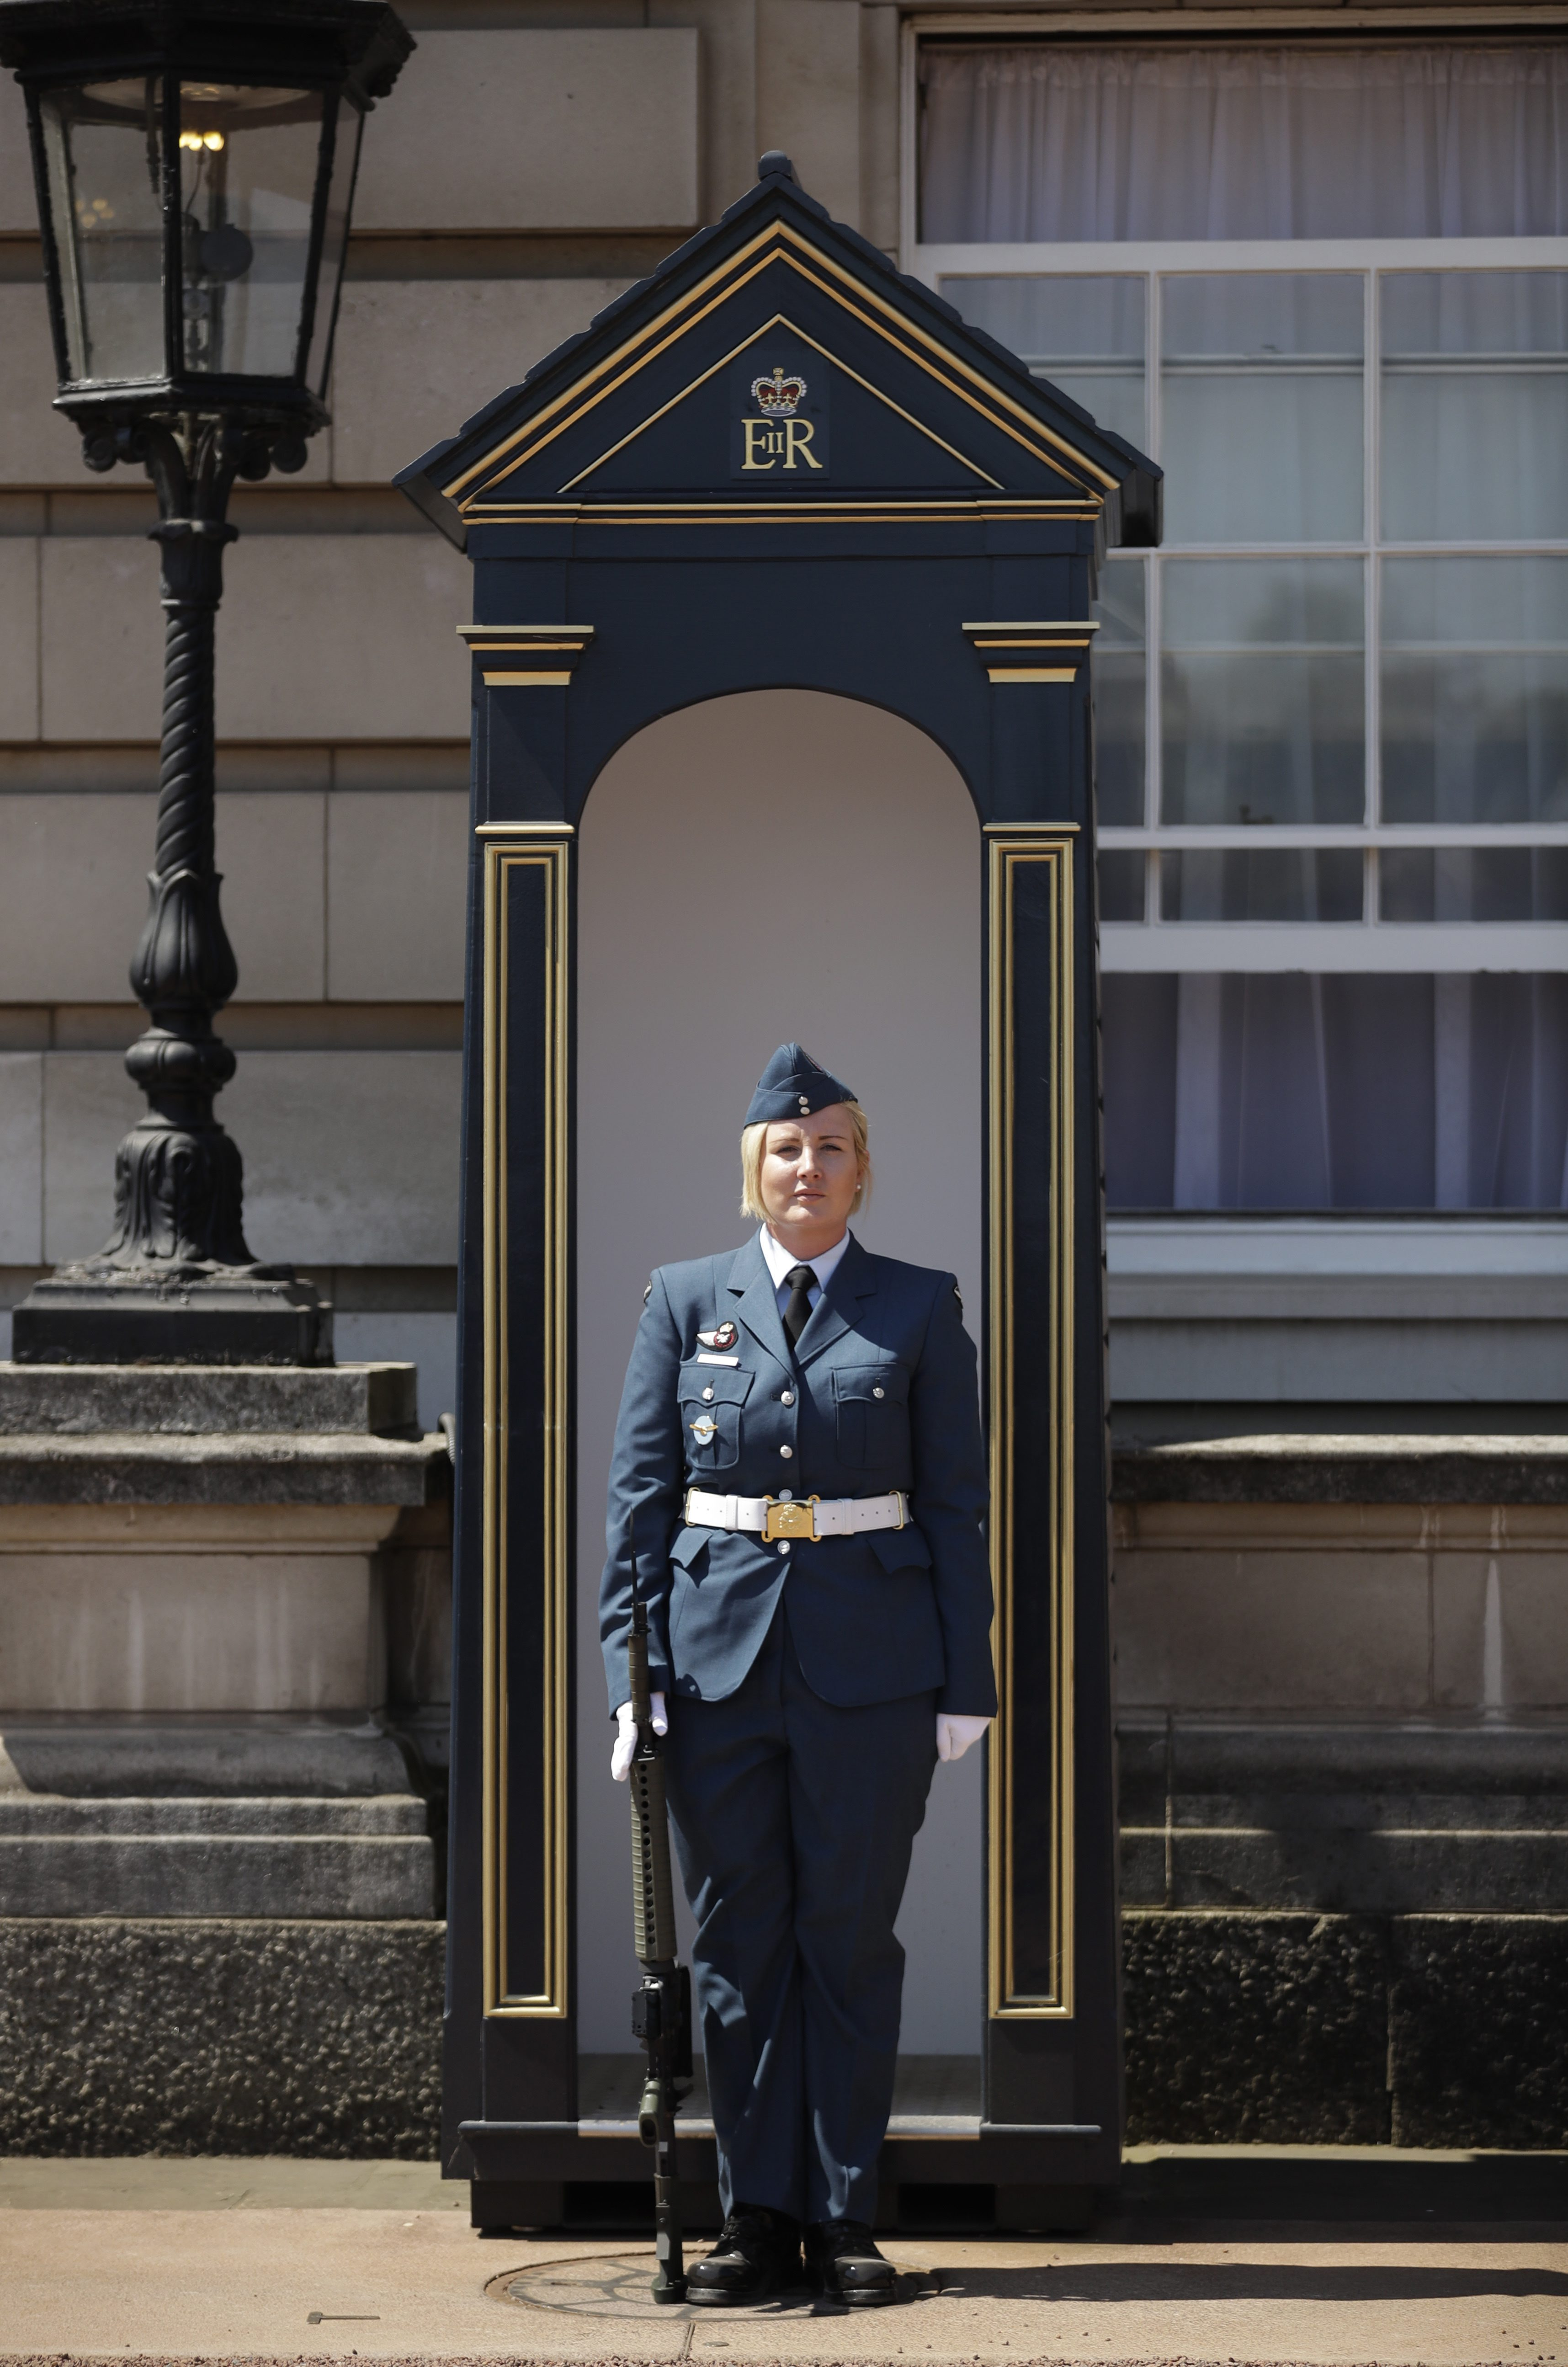 Female RCAF member in front of queen's guard post.